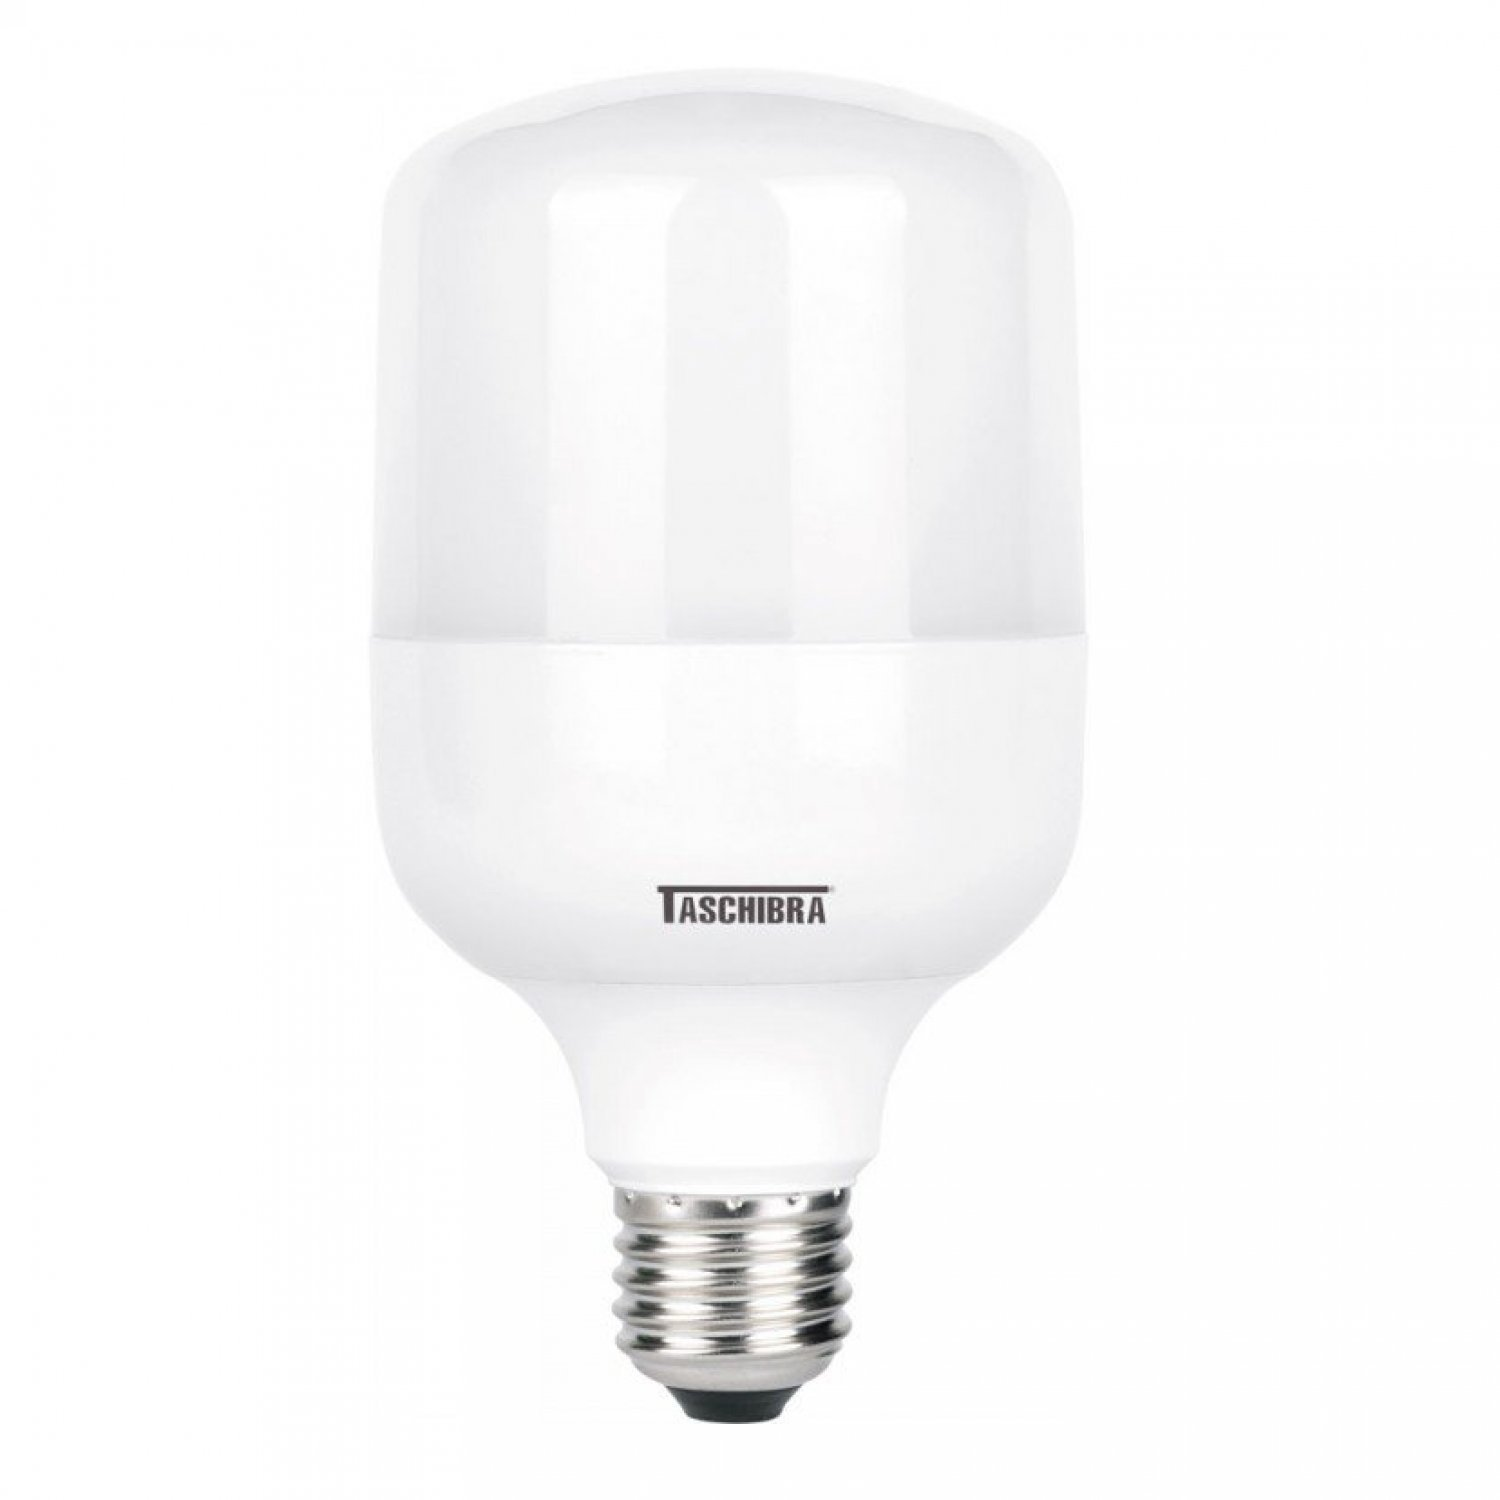 Lâmpada Led 50W – Taschibra